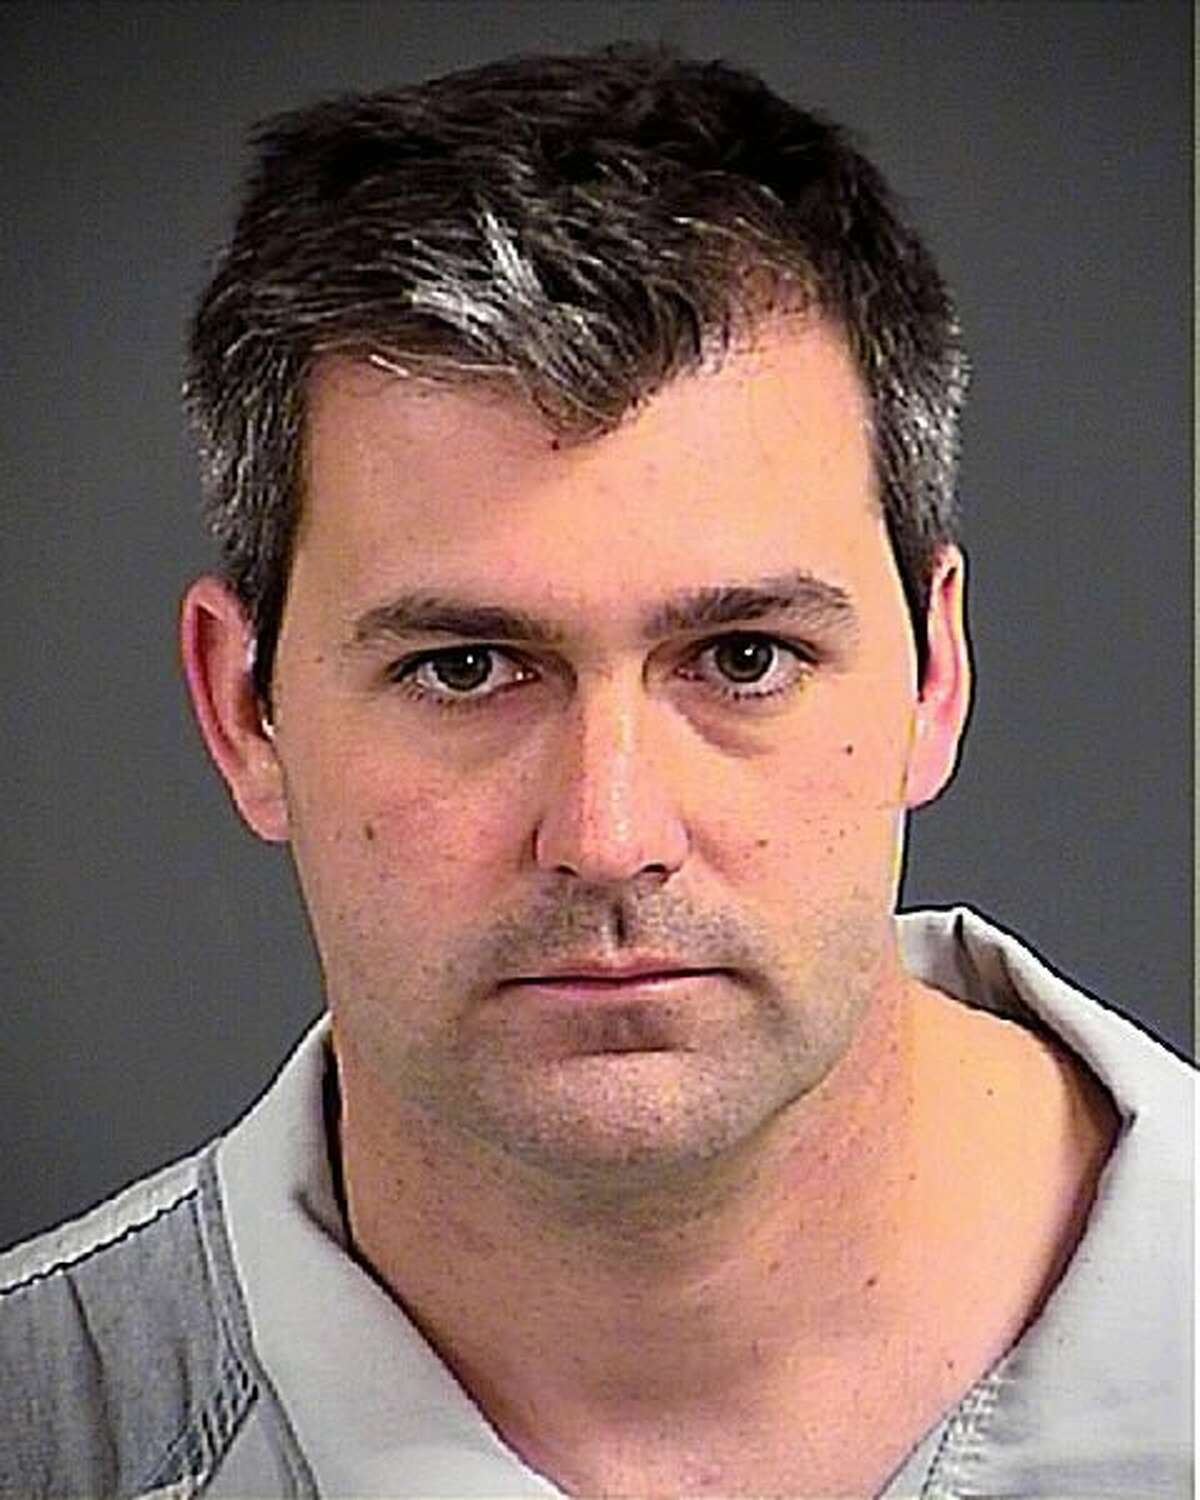 NORTH CHARLESTON, SC - APRIL 7: (EDITOR'S NOTE: Best quality available) In this handout photo provided by the Charleston County Detention Center, police officer Michael Slager poses for his mug shot after being arrested on a charge of murder on April 7, 2015 in North Charleston, South Carolina. Officer Slager shot Walter Scott, who was unarmed, in the back as he was running away after an altercation during a traffic stop on April 4. (Photo by Charleston County Detention Center via Getty Images)